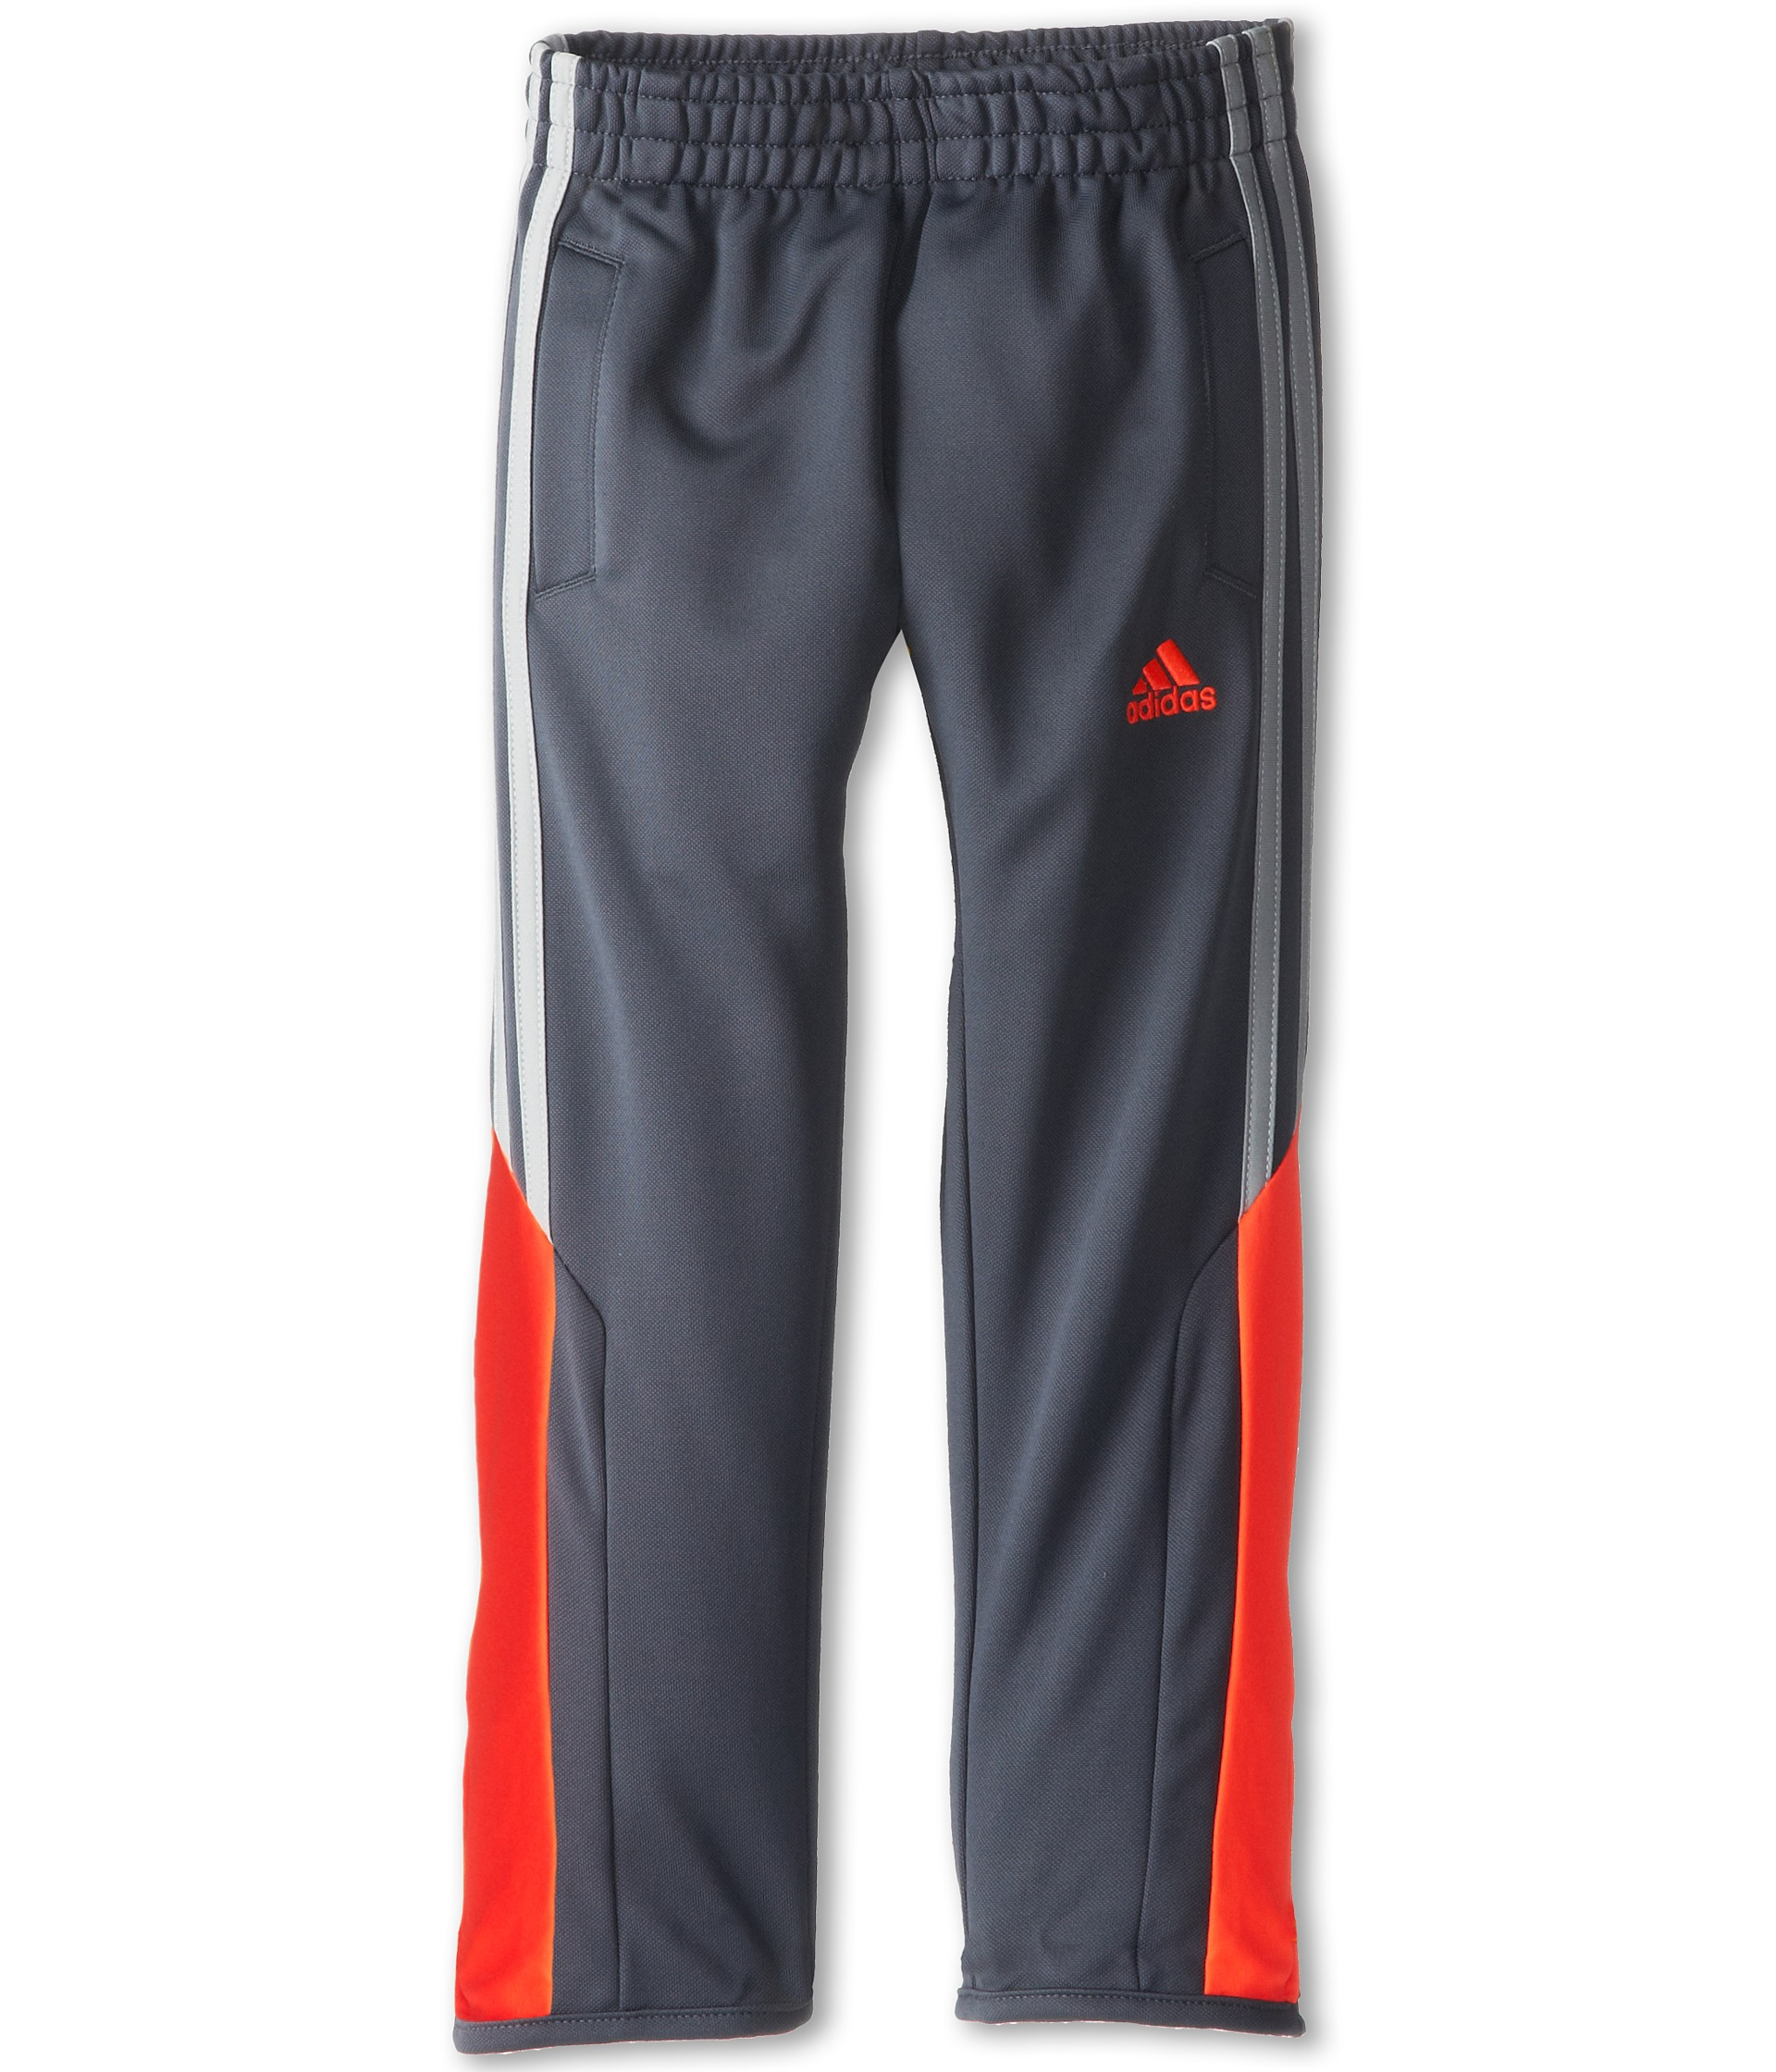 Find Soccer Pants at obmenvisitami.tk Enjoy free shipping and returns with NikePlus.